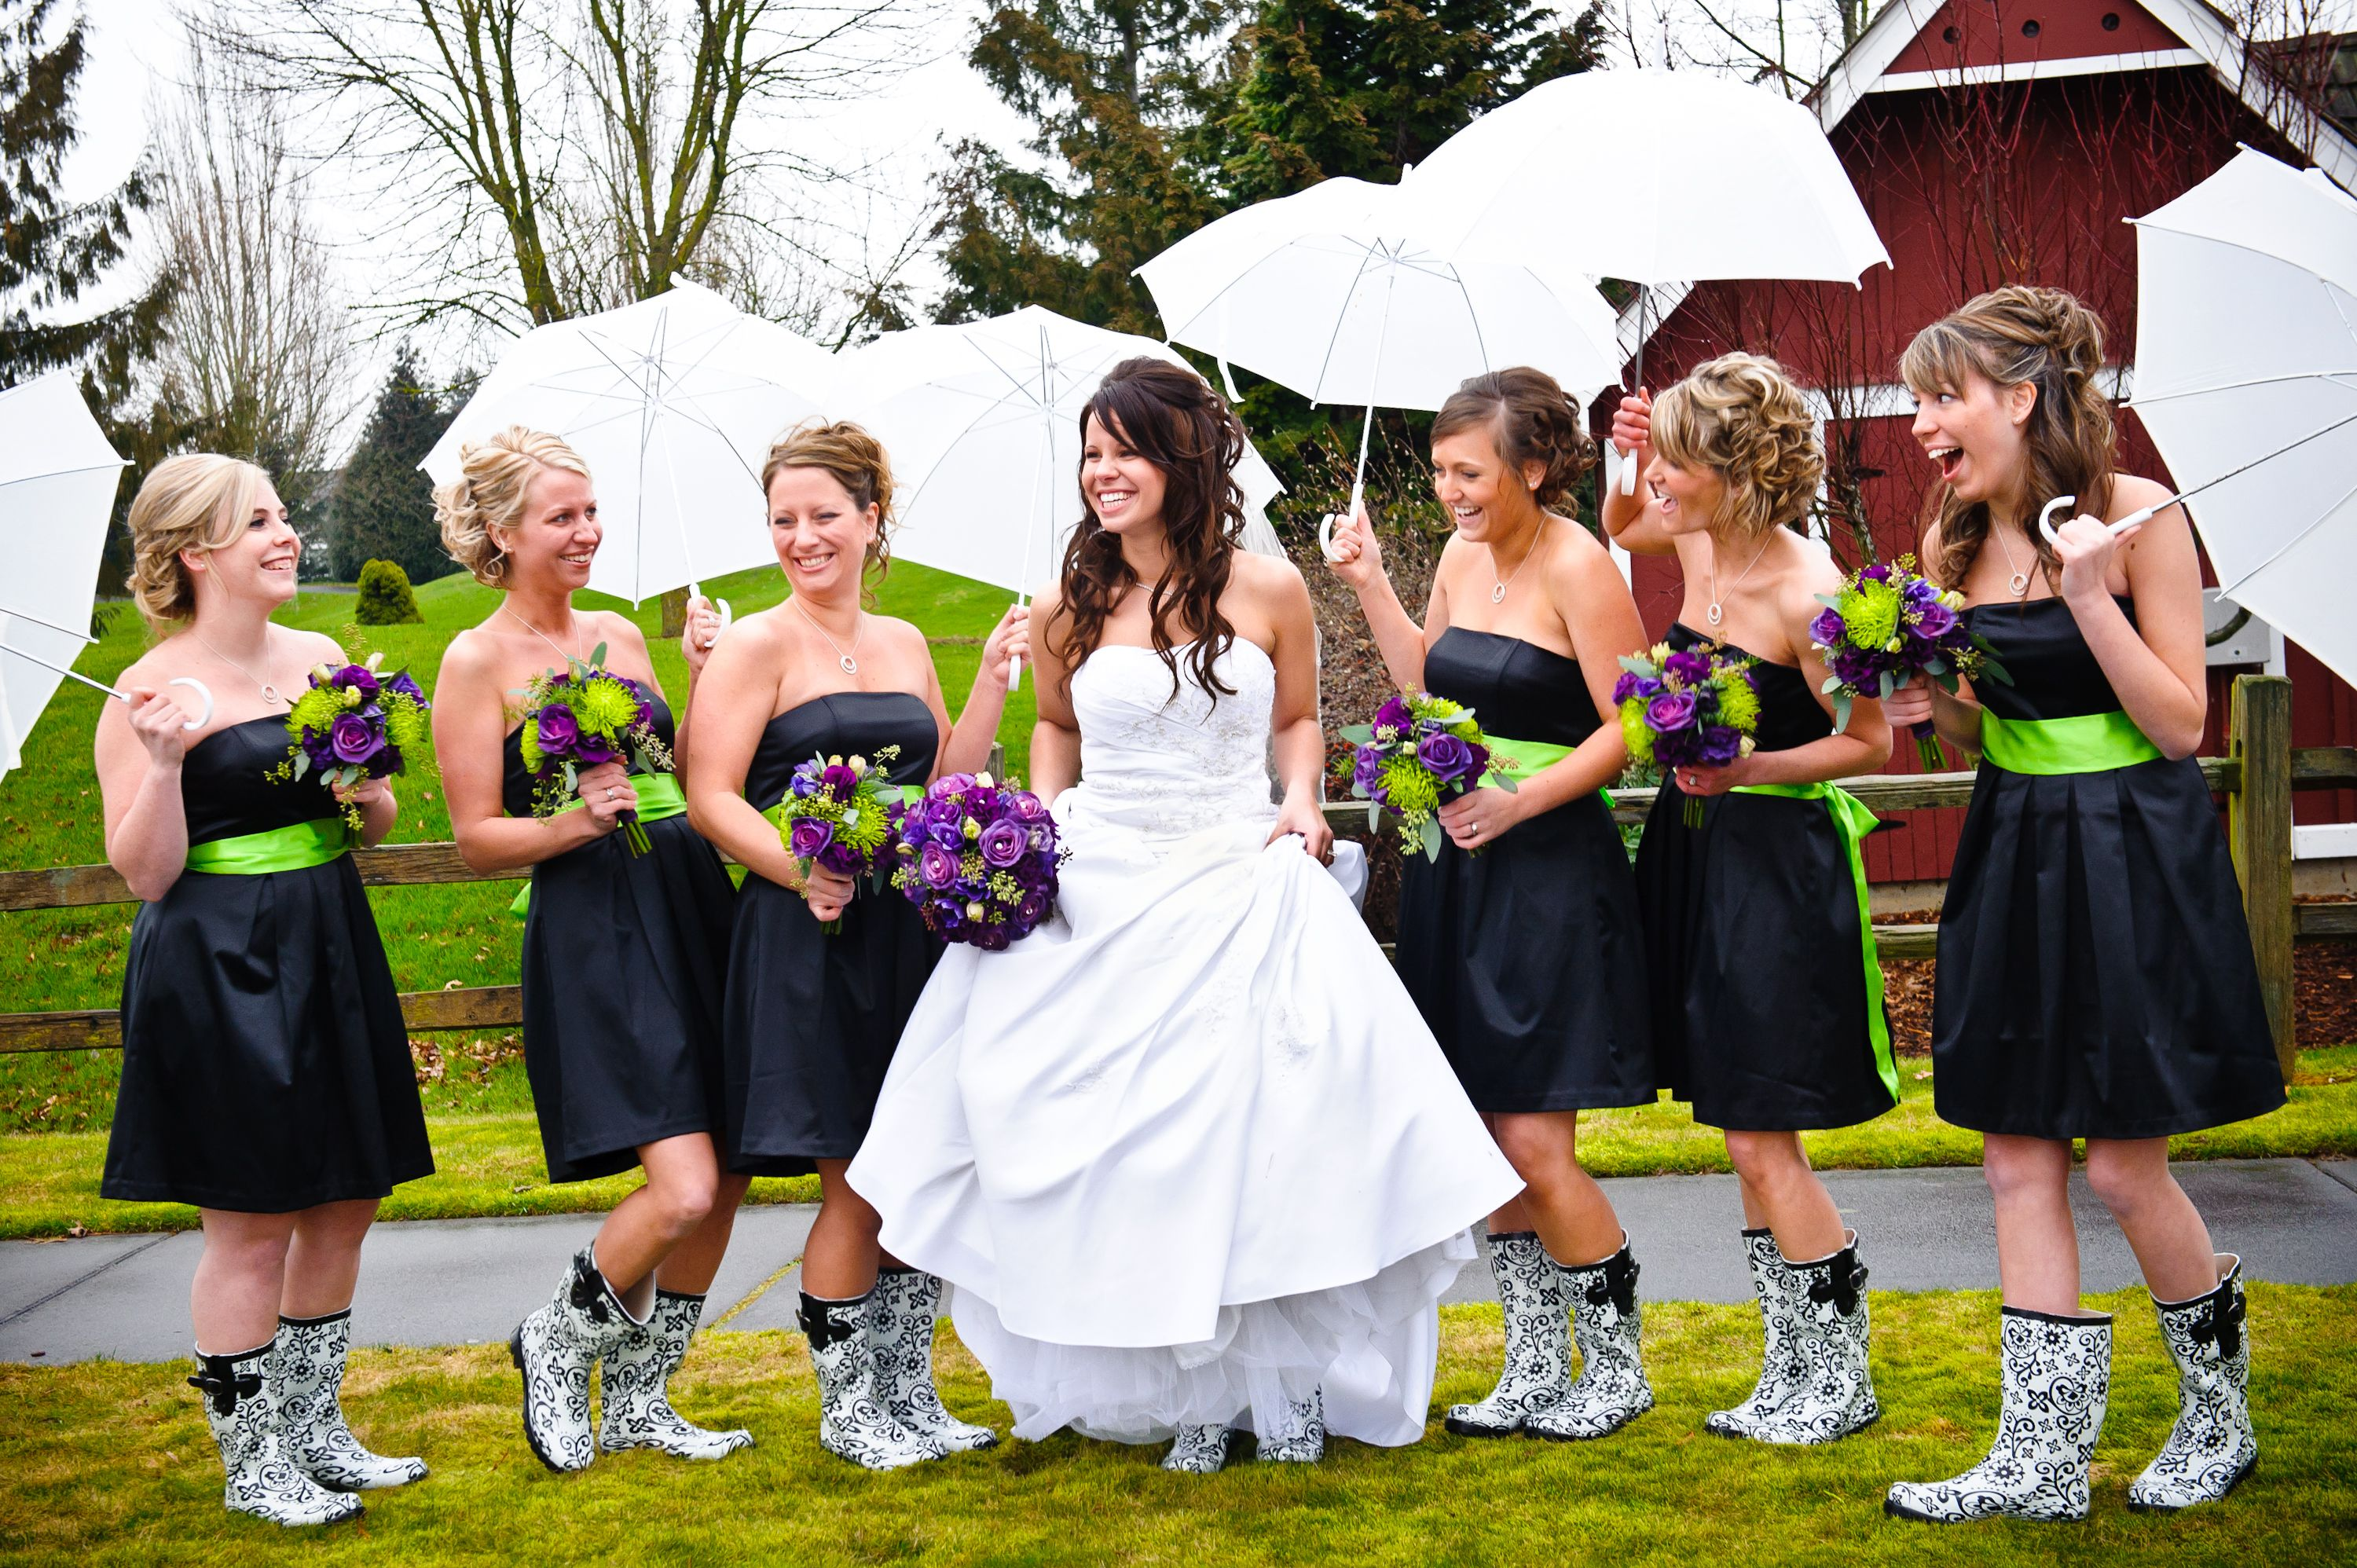 Matching bridesmaids' rain boots and umbrellas are perfect for the rainy weather.